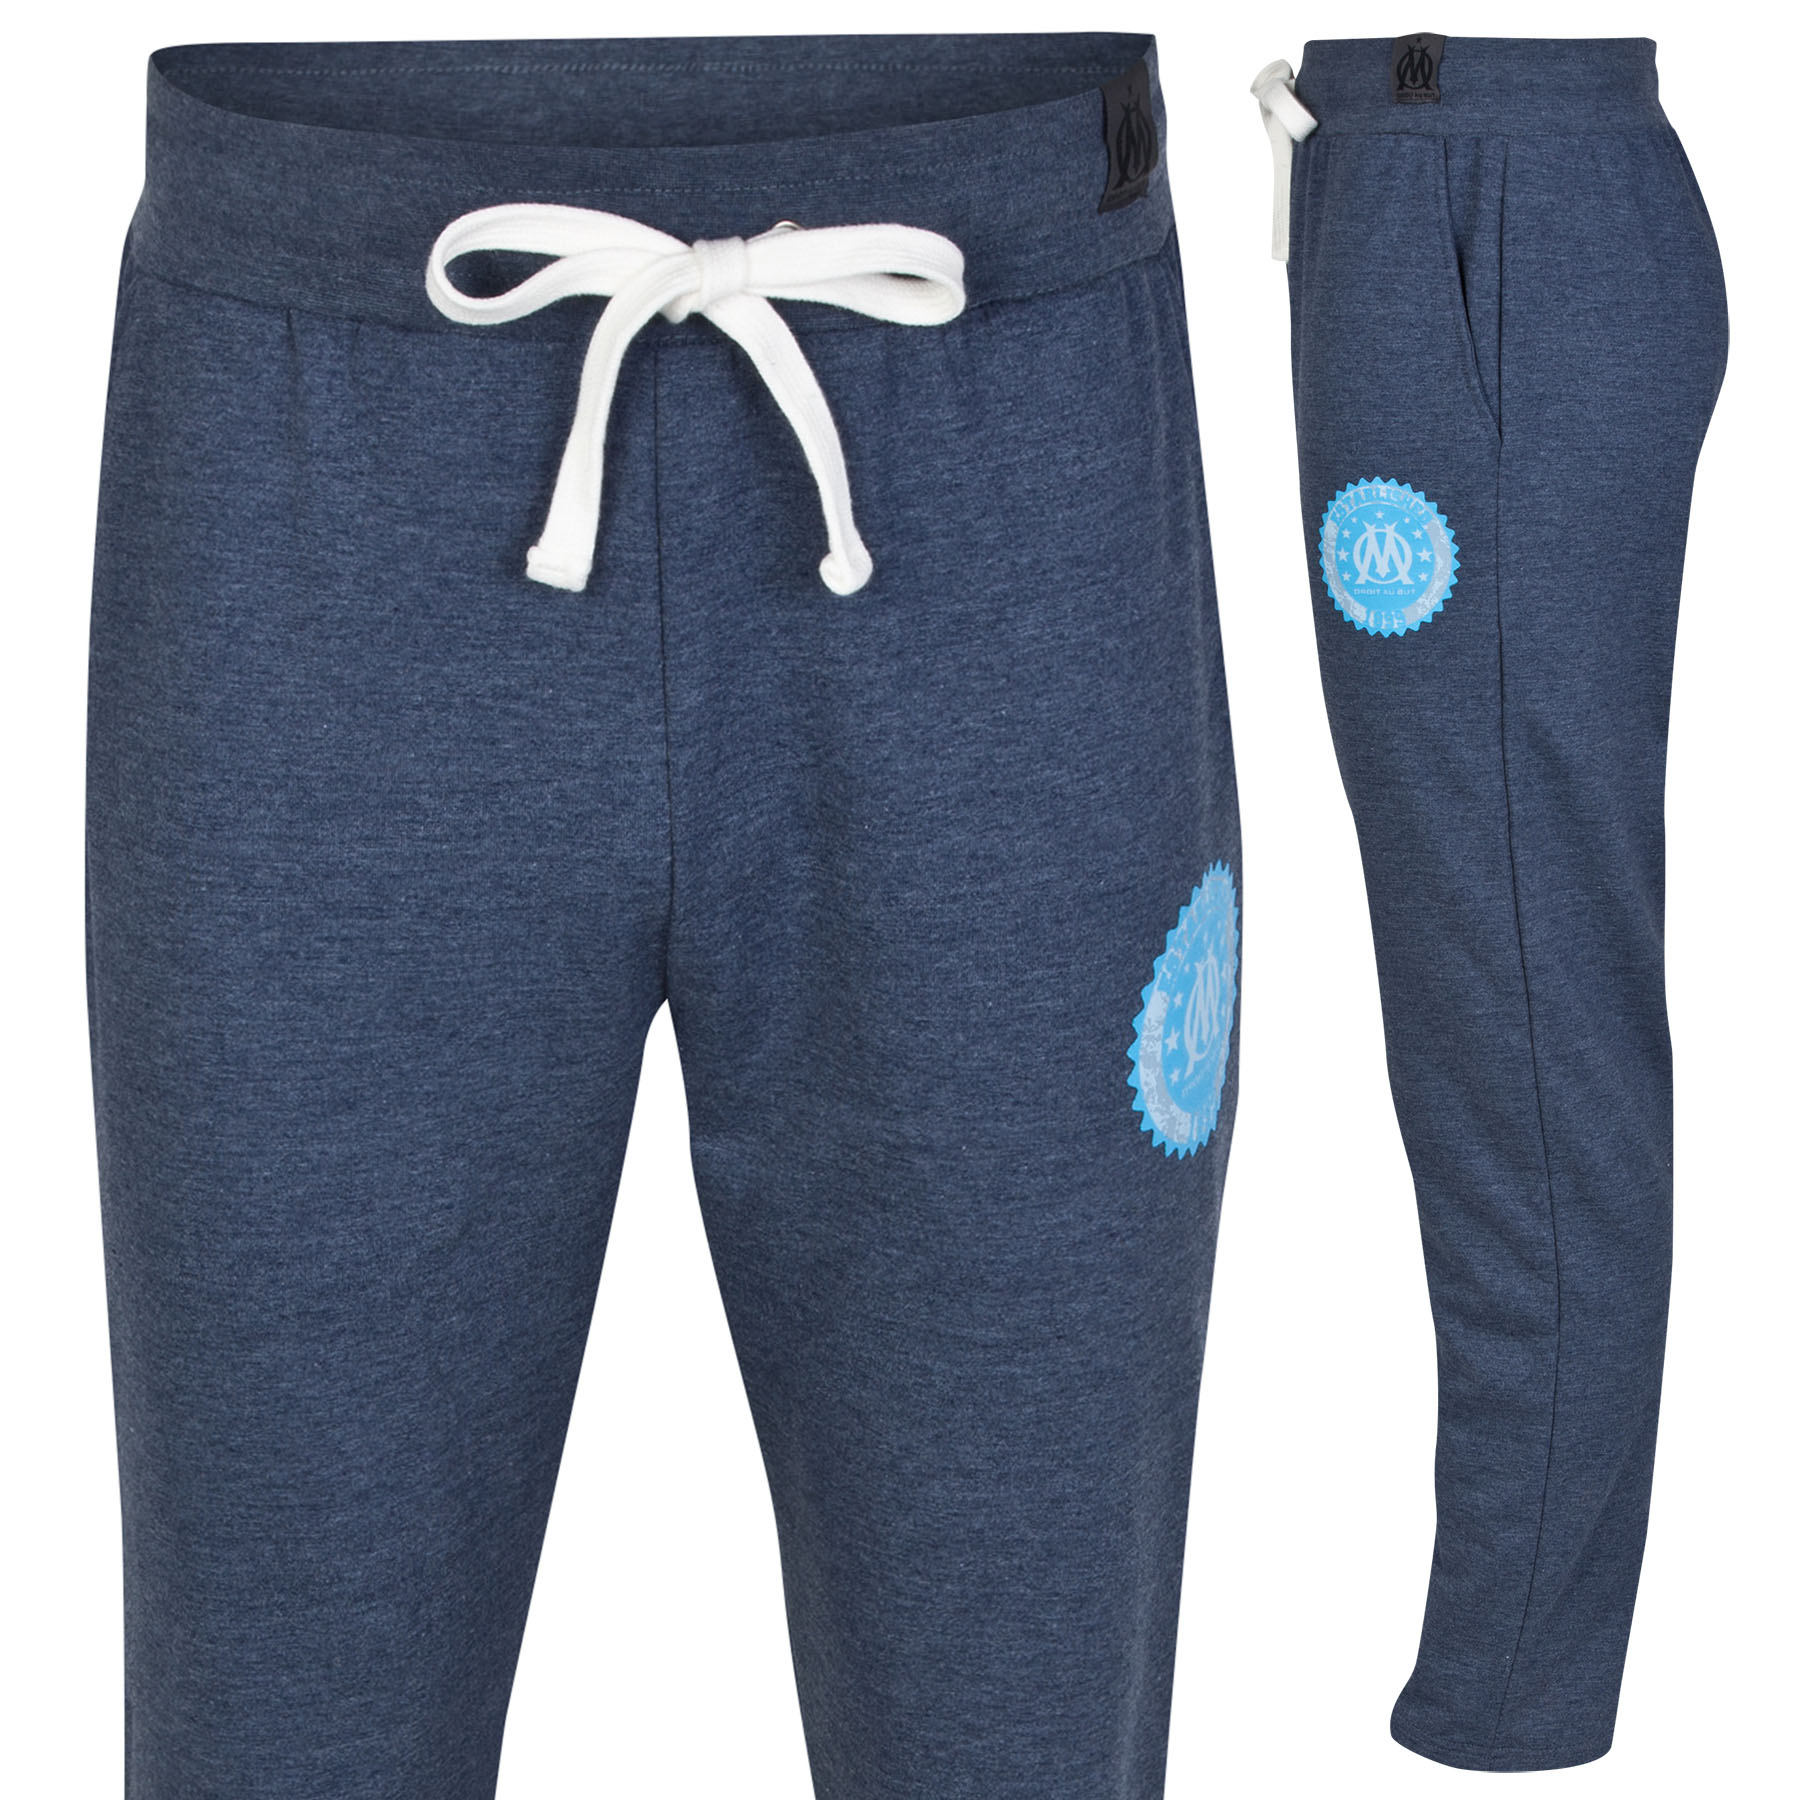 Olympique de Marseille Lifestyle Joggers - Denim Blue - Mens